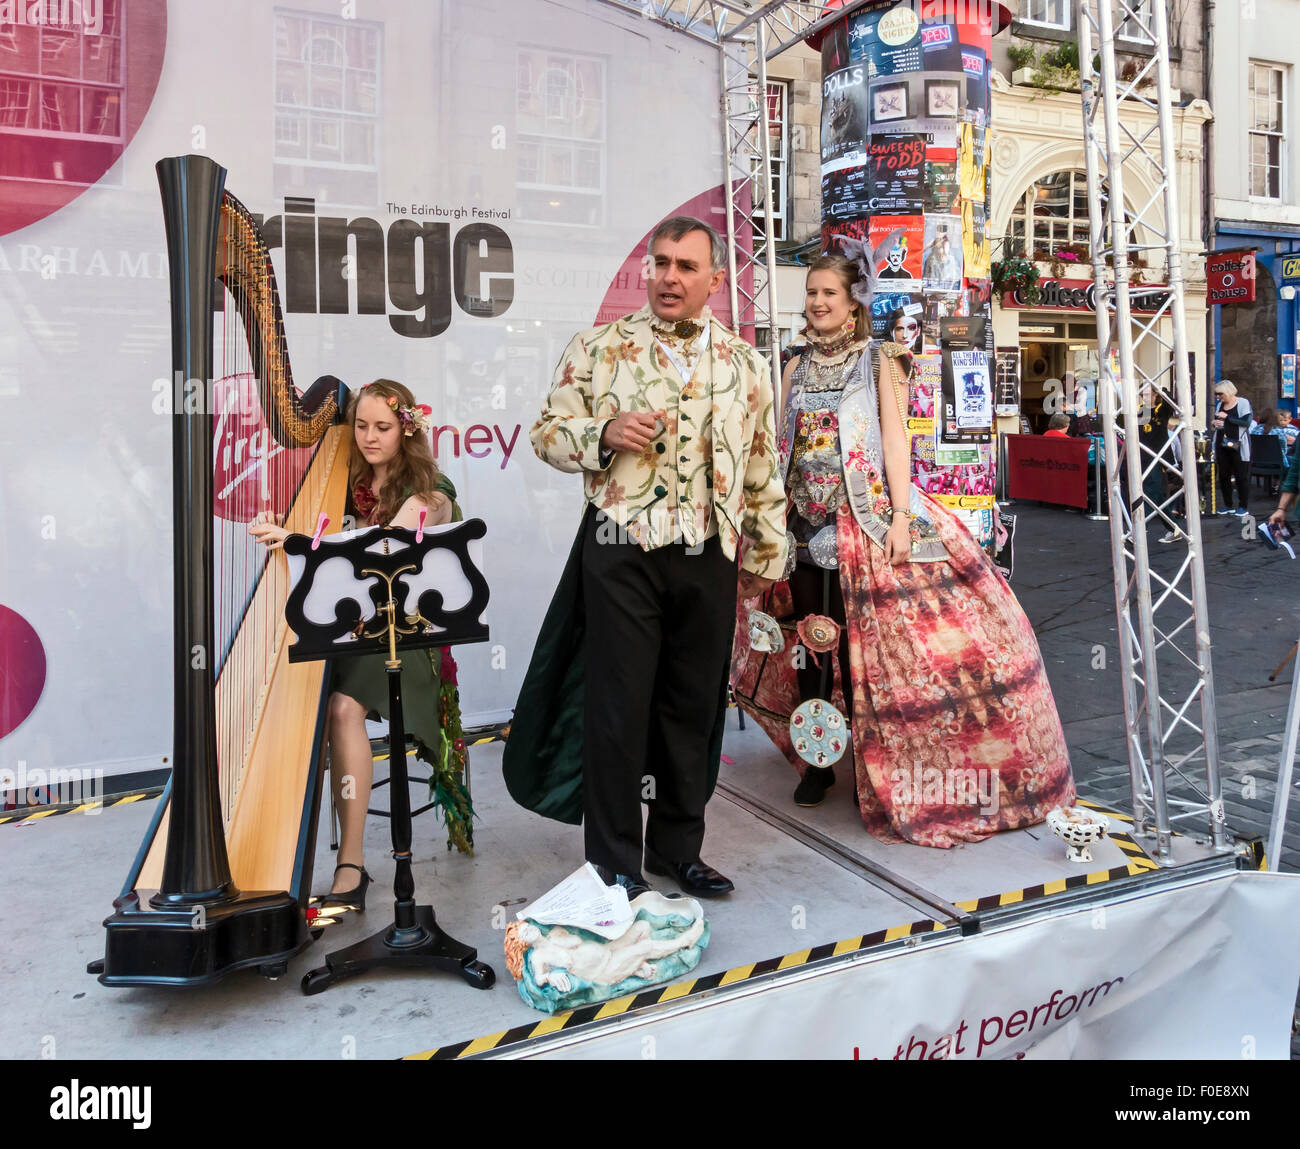 Artists & performers promoting their shows at the Edinburgh Festival Fringe 2015 in The Royal Mile Edinburgh - Stock Image